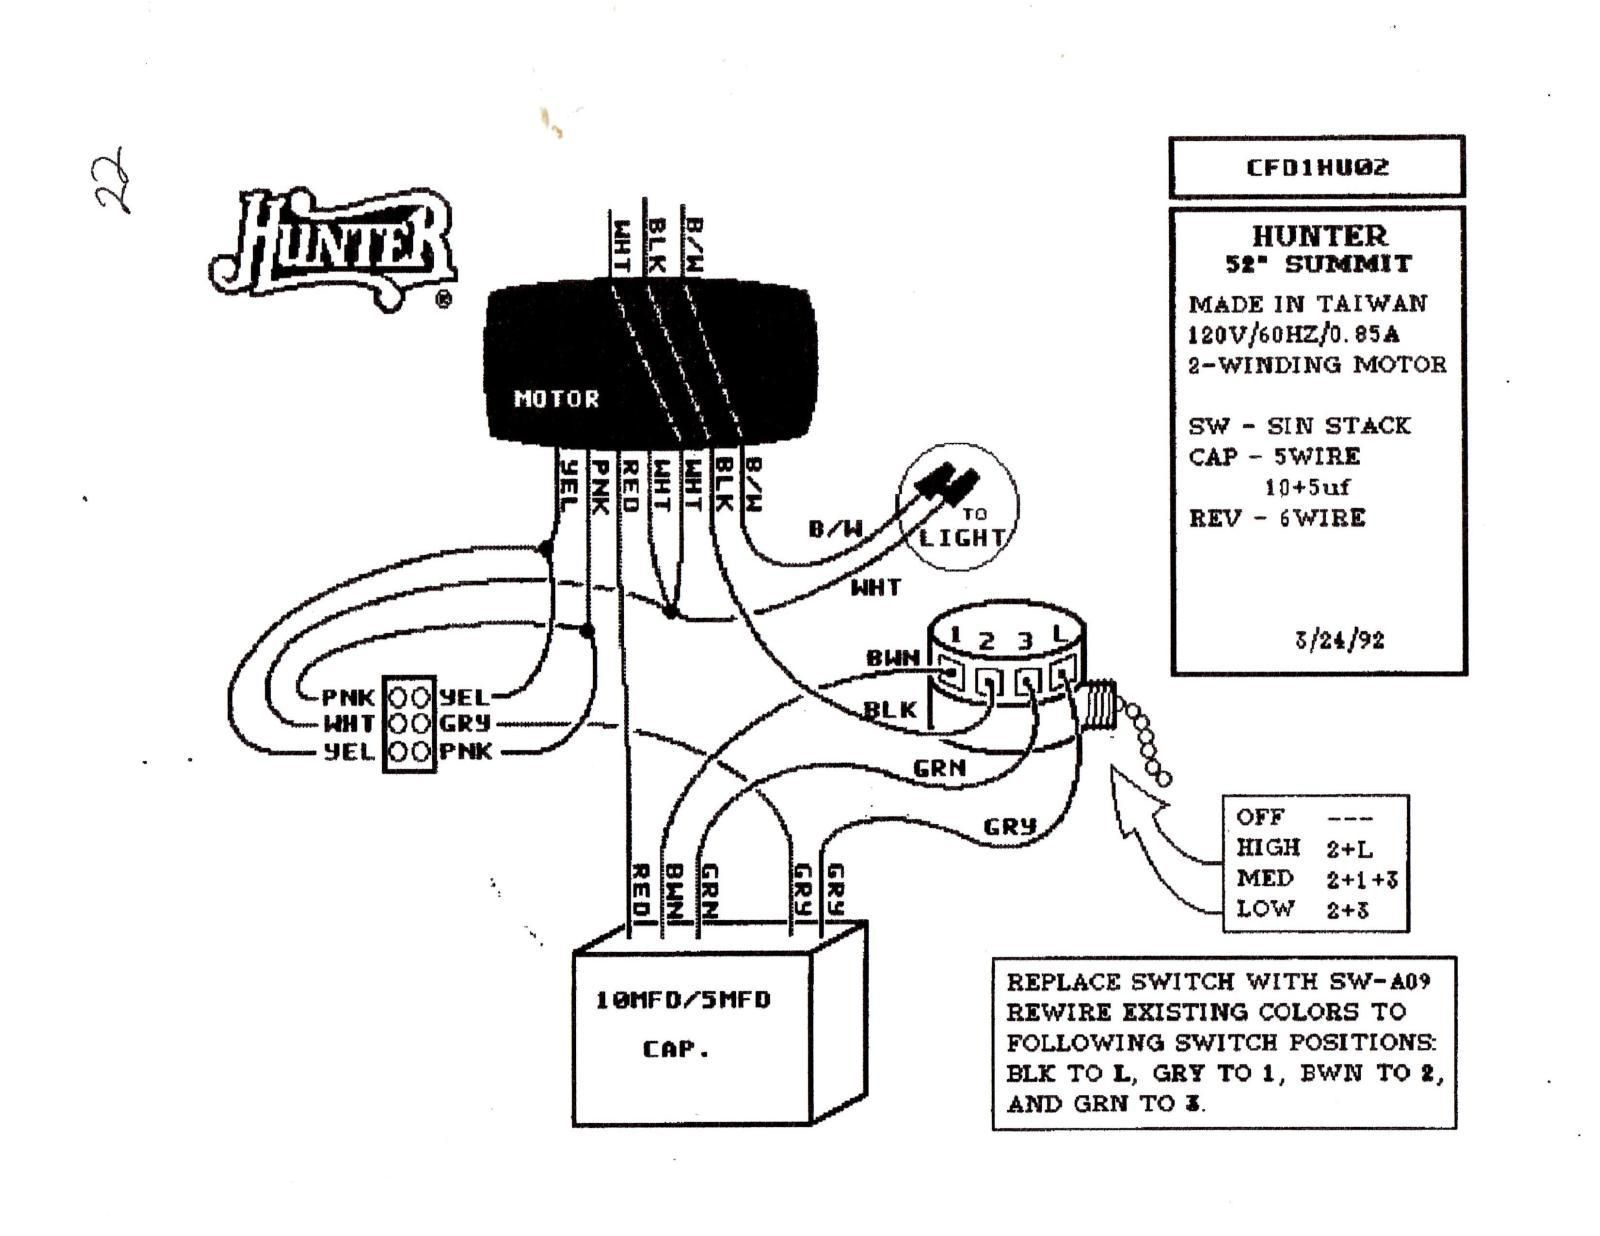 Ceiling Fan Motor Schematic Wiring Diagram